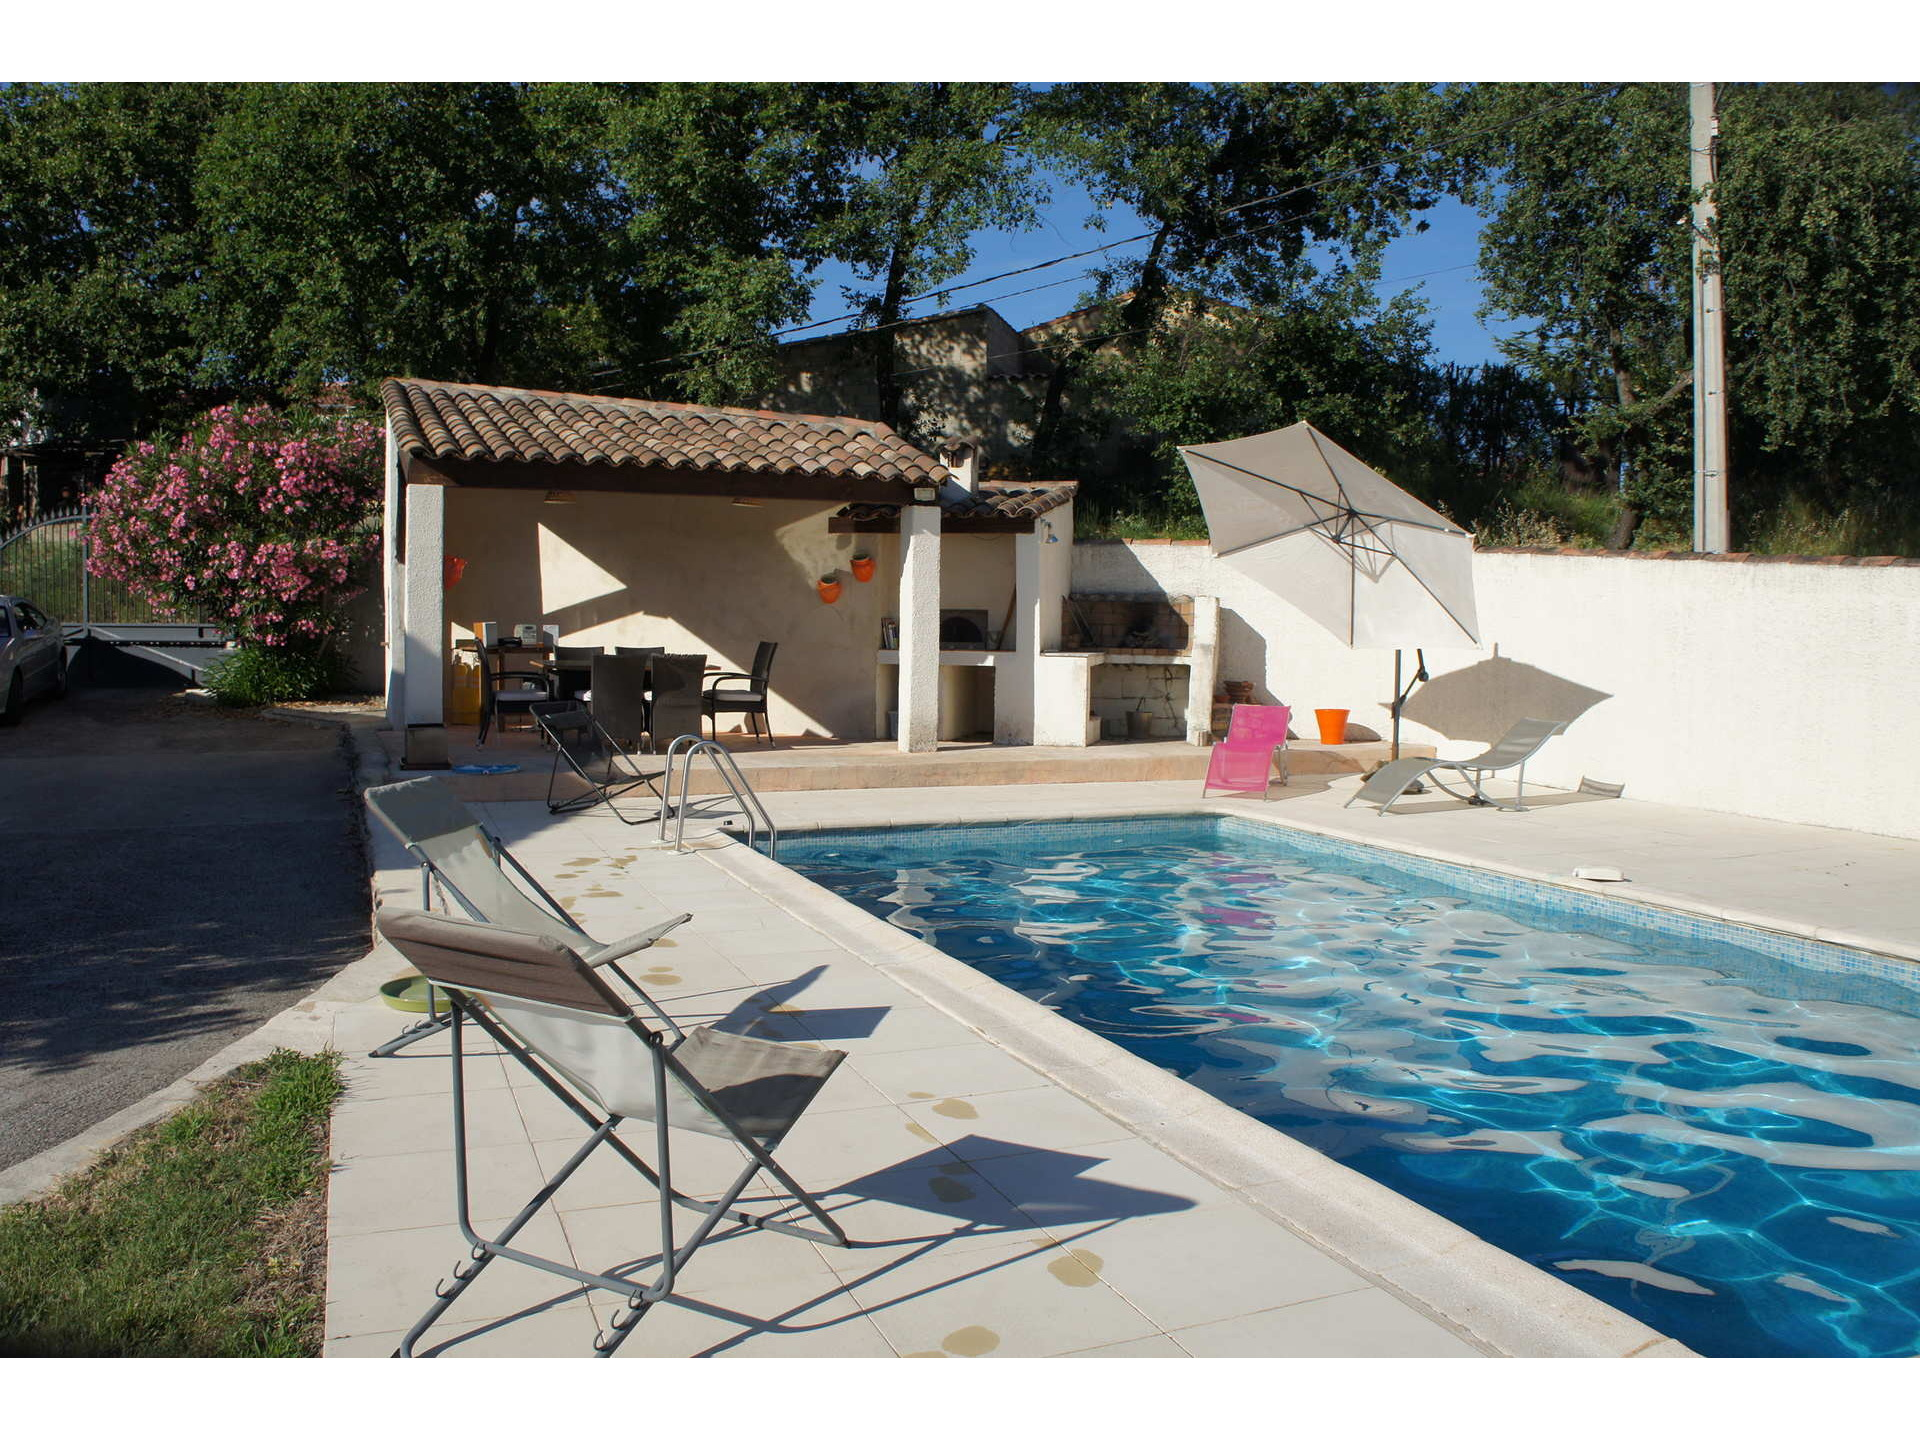 maison moussac - Location Maison Vacances Piscine Prive